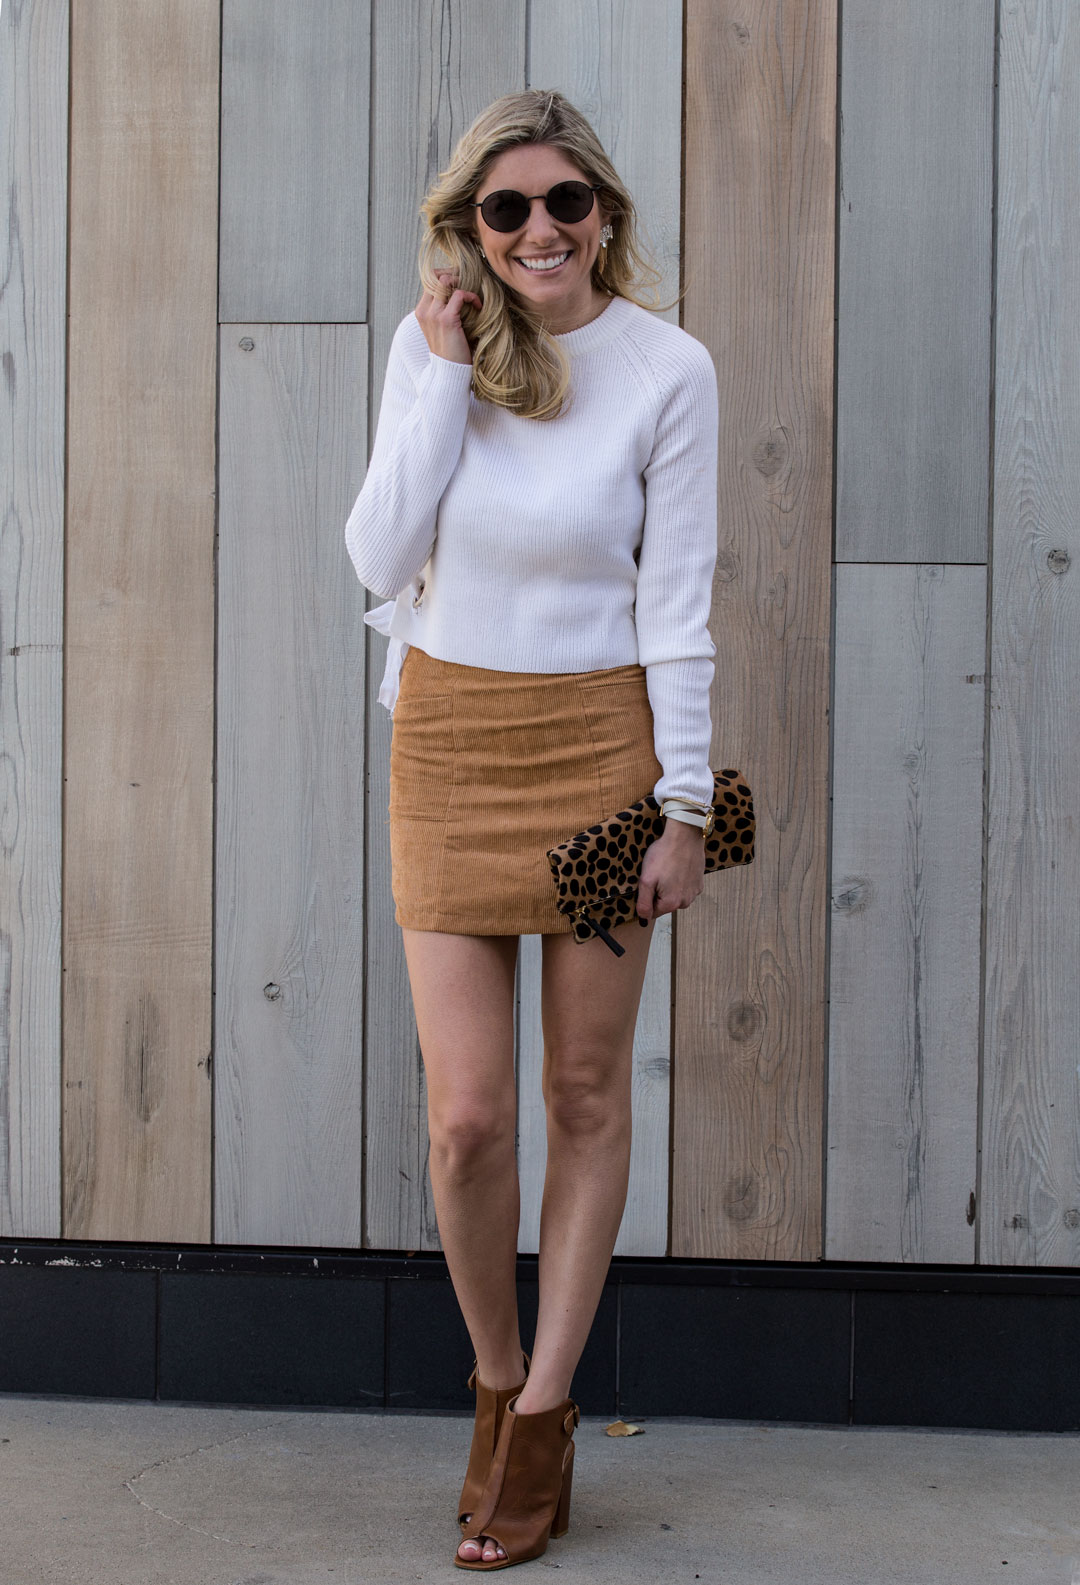 Shein Courderoy Skirt under $15